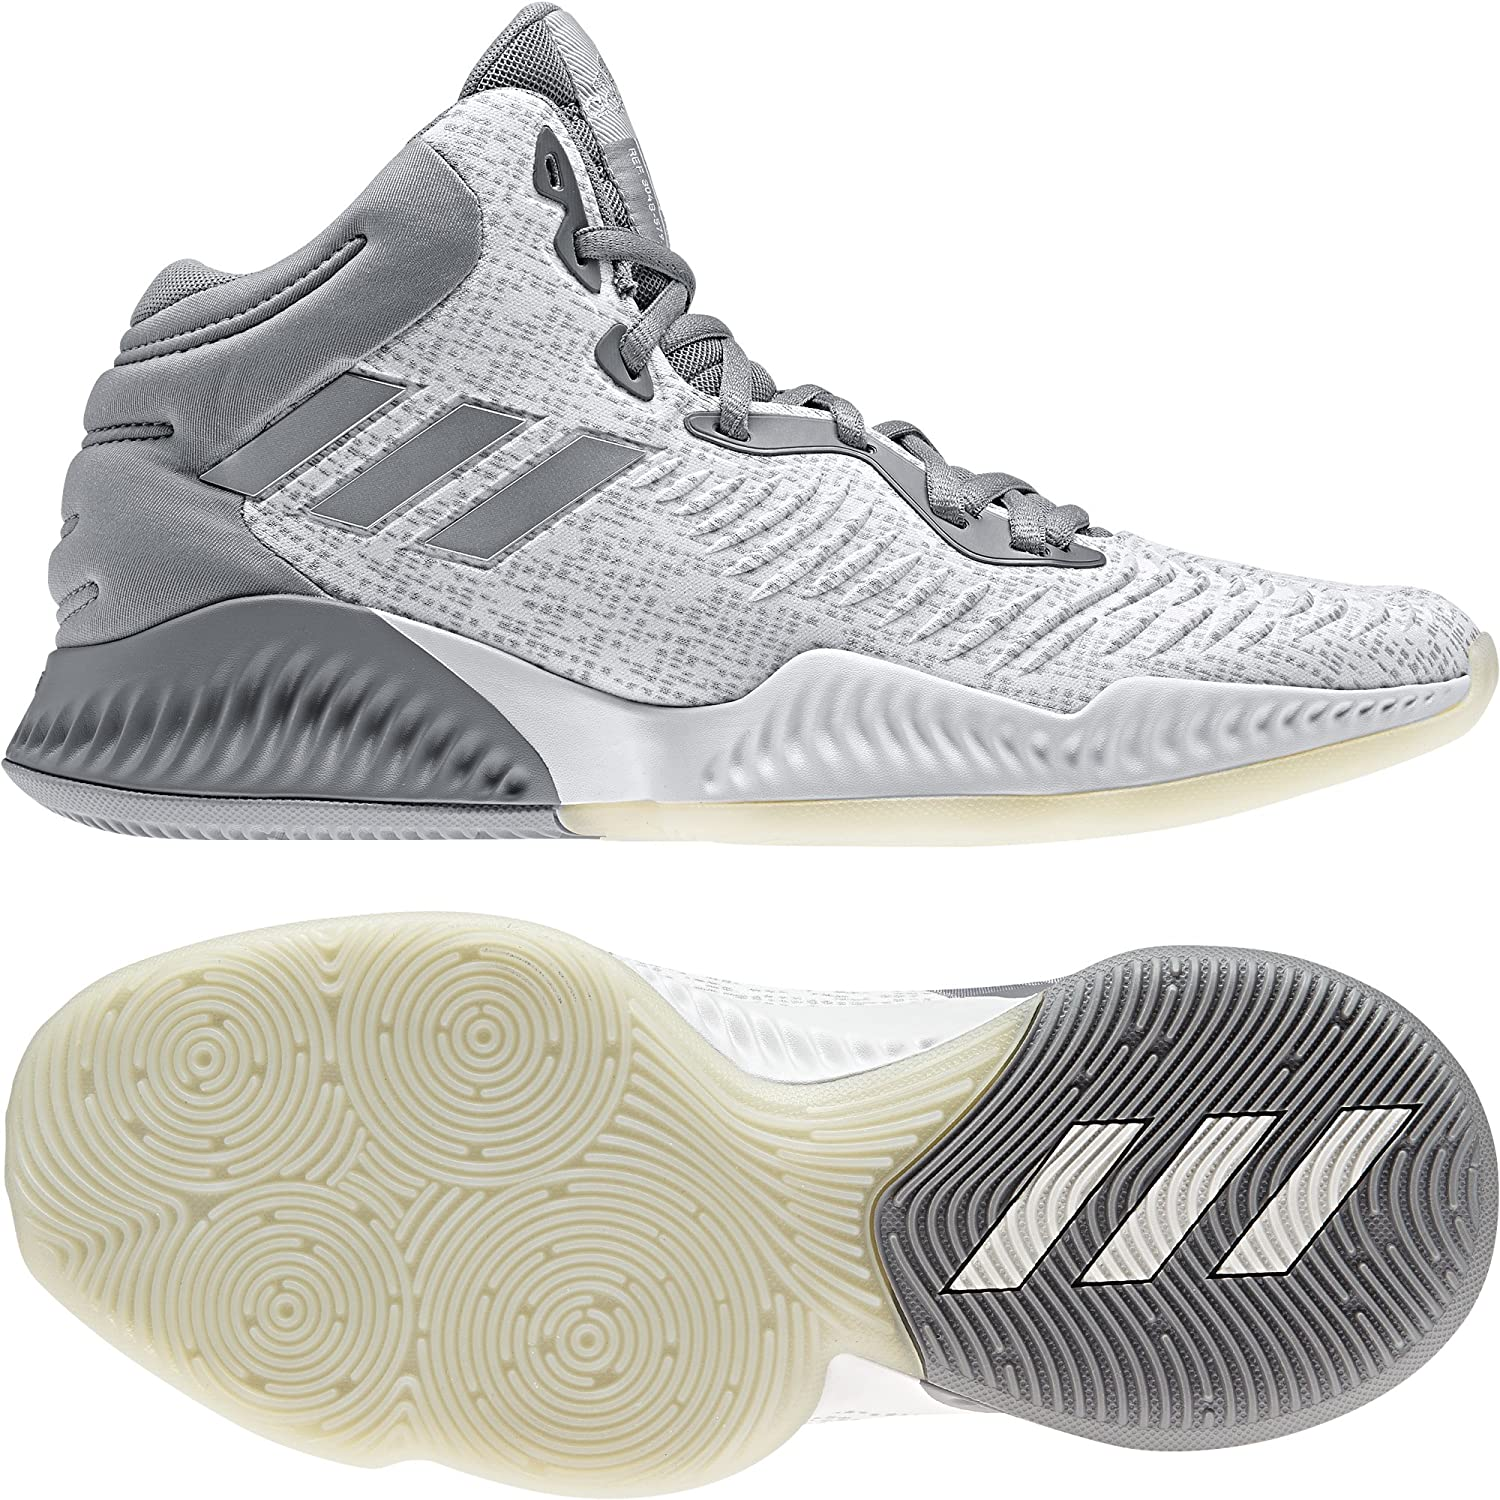 gris (Grethr Silvmt Greone Grethr Silvmt Greone) adidas Mad Bounce 2018, Chaussures de Basketball Homme 55 1 3 EU